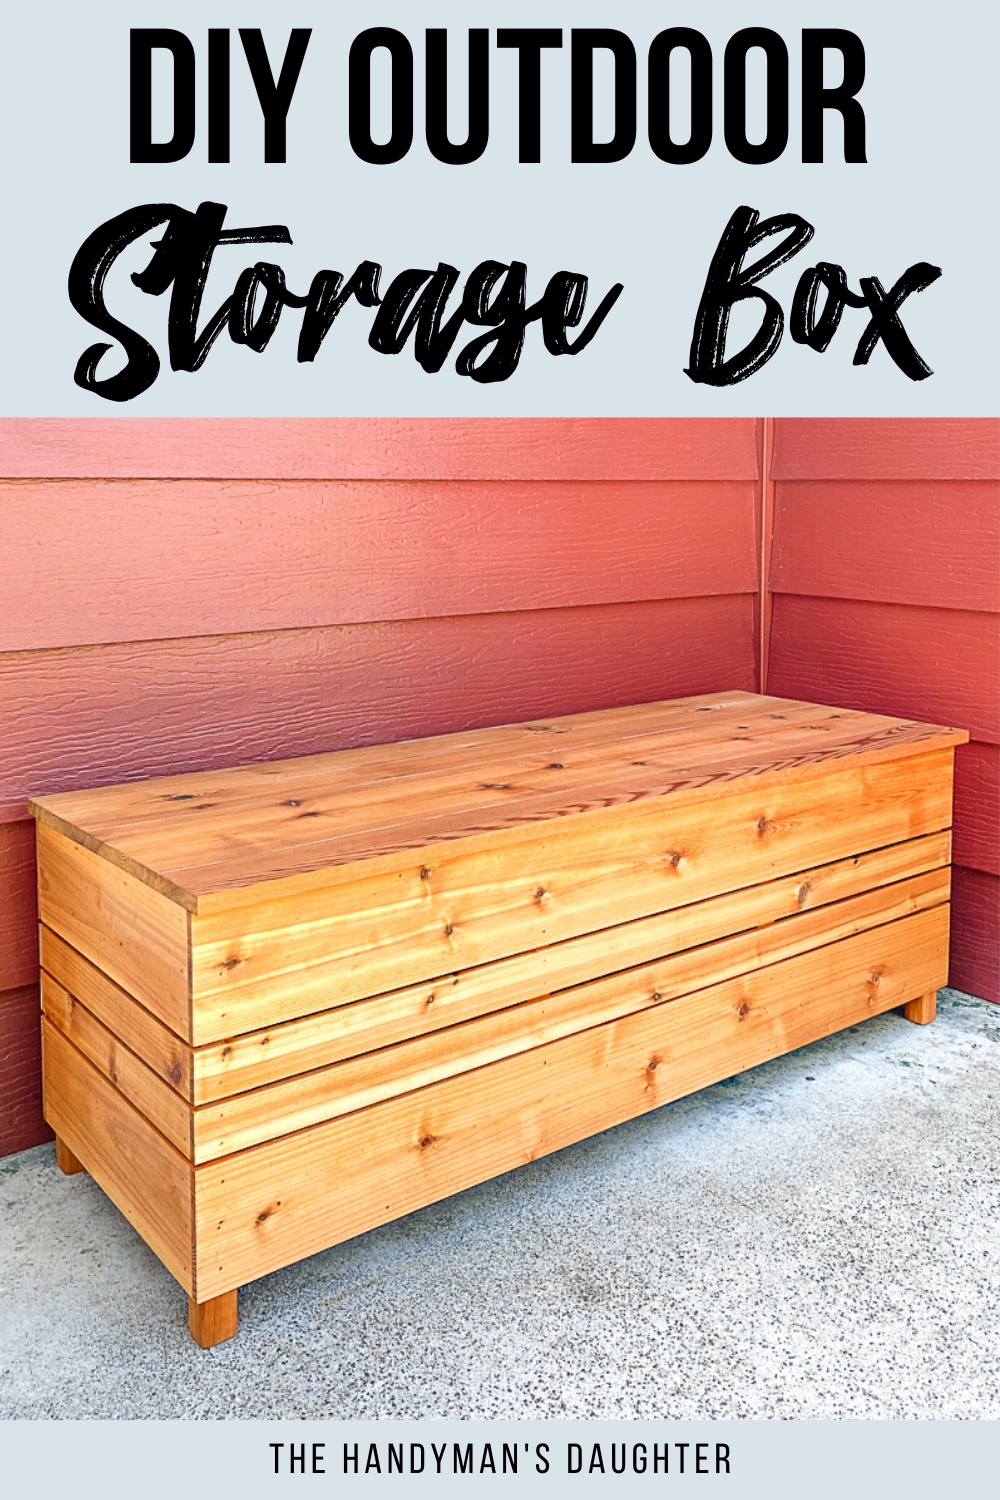 DIY outdoor storage box with plans